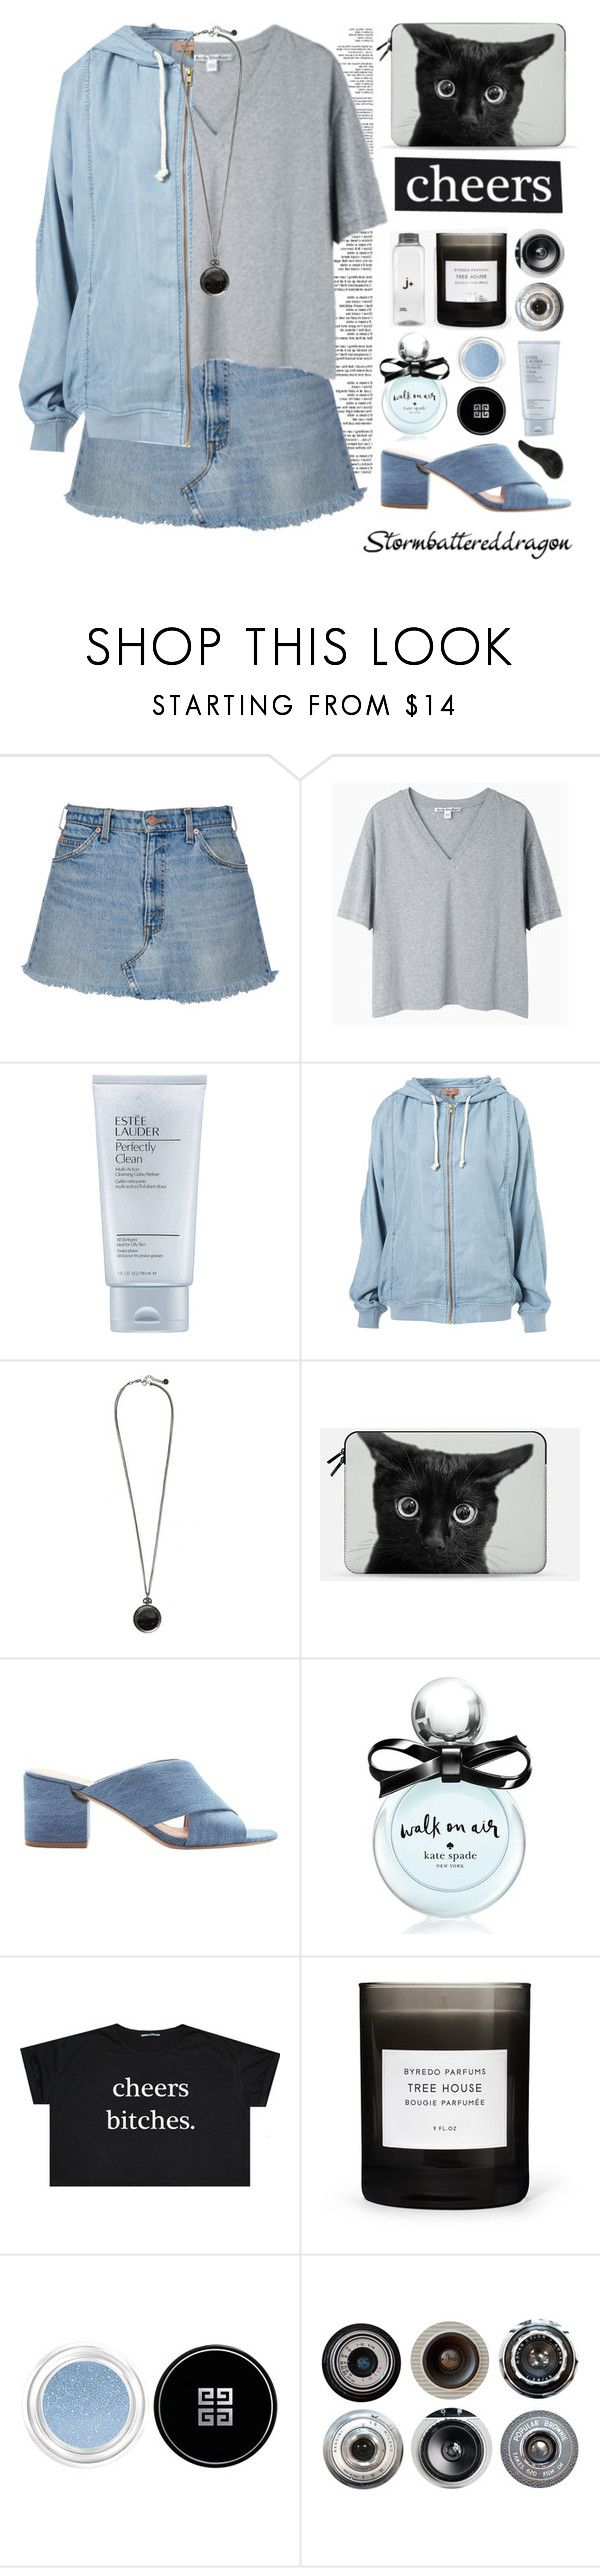 """""""Cheers!"""" by stormbattereddragon ❤ liked on Polyvore featuring Acne Studios, Estée Lauder, AllSaints, Casetify, Sigerson Morrison, Kate Spade, Givenchy and Ella Doran"""